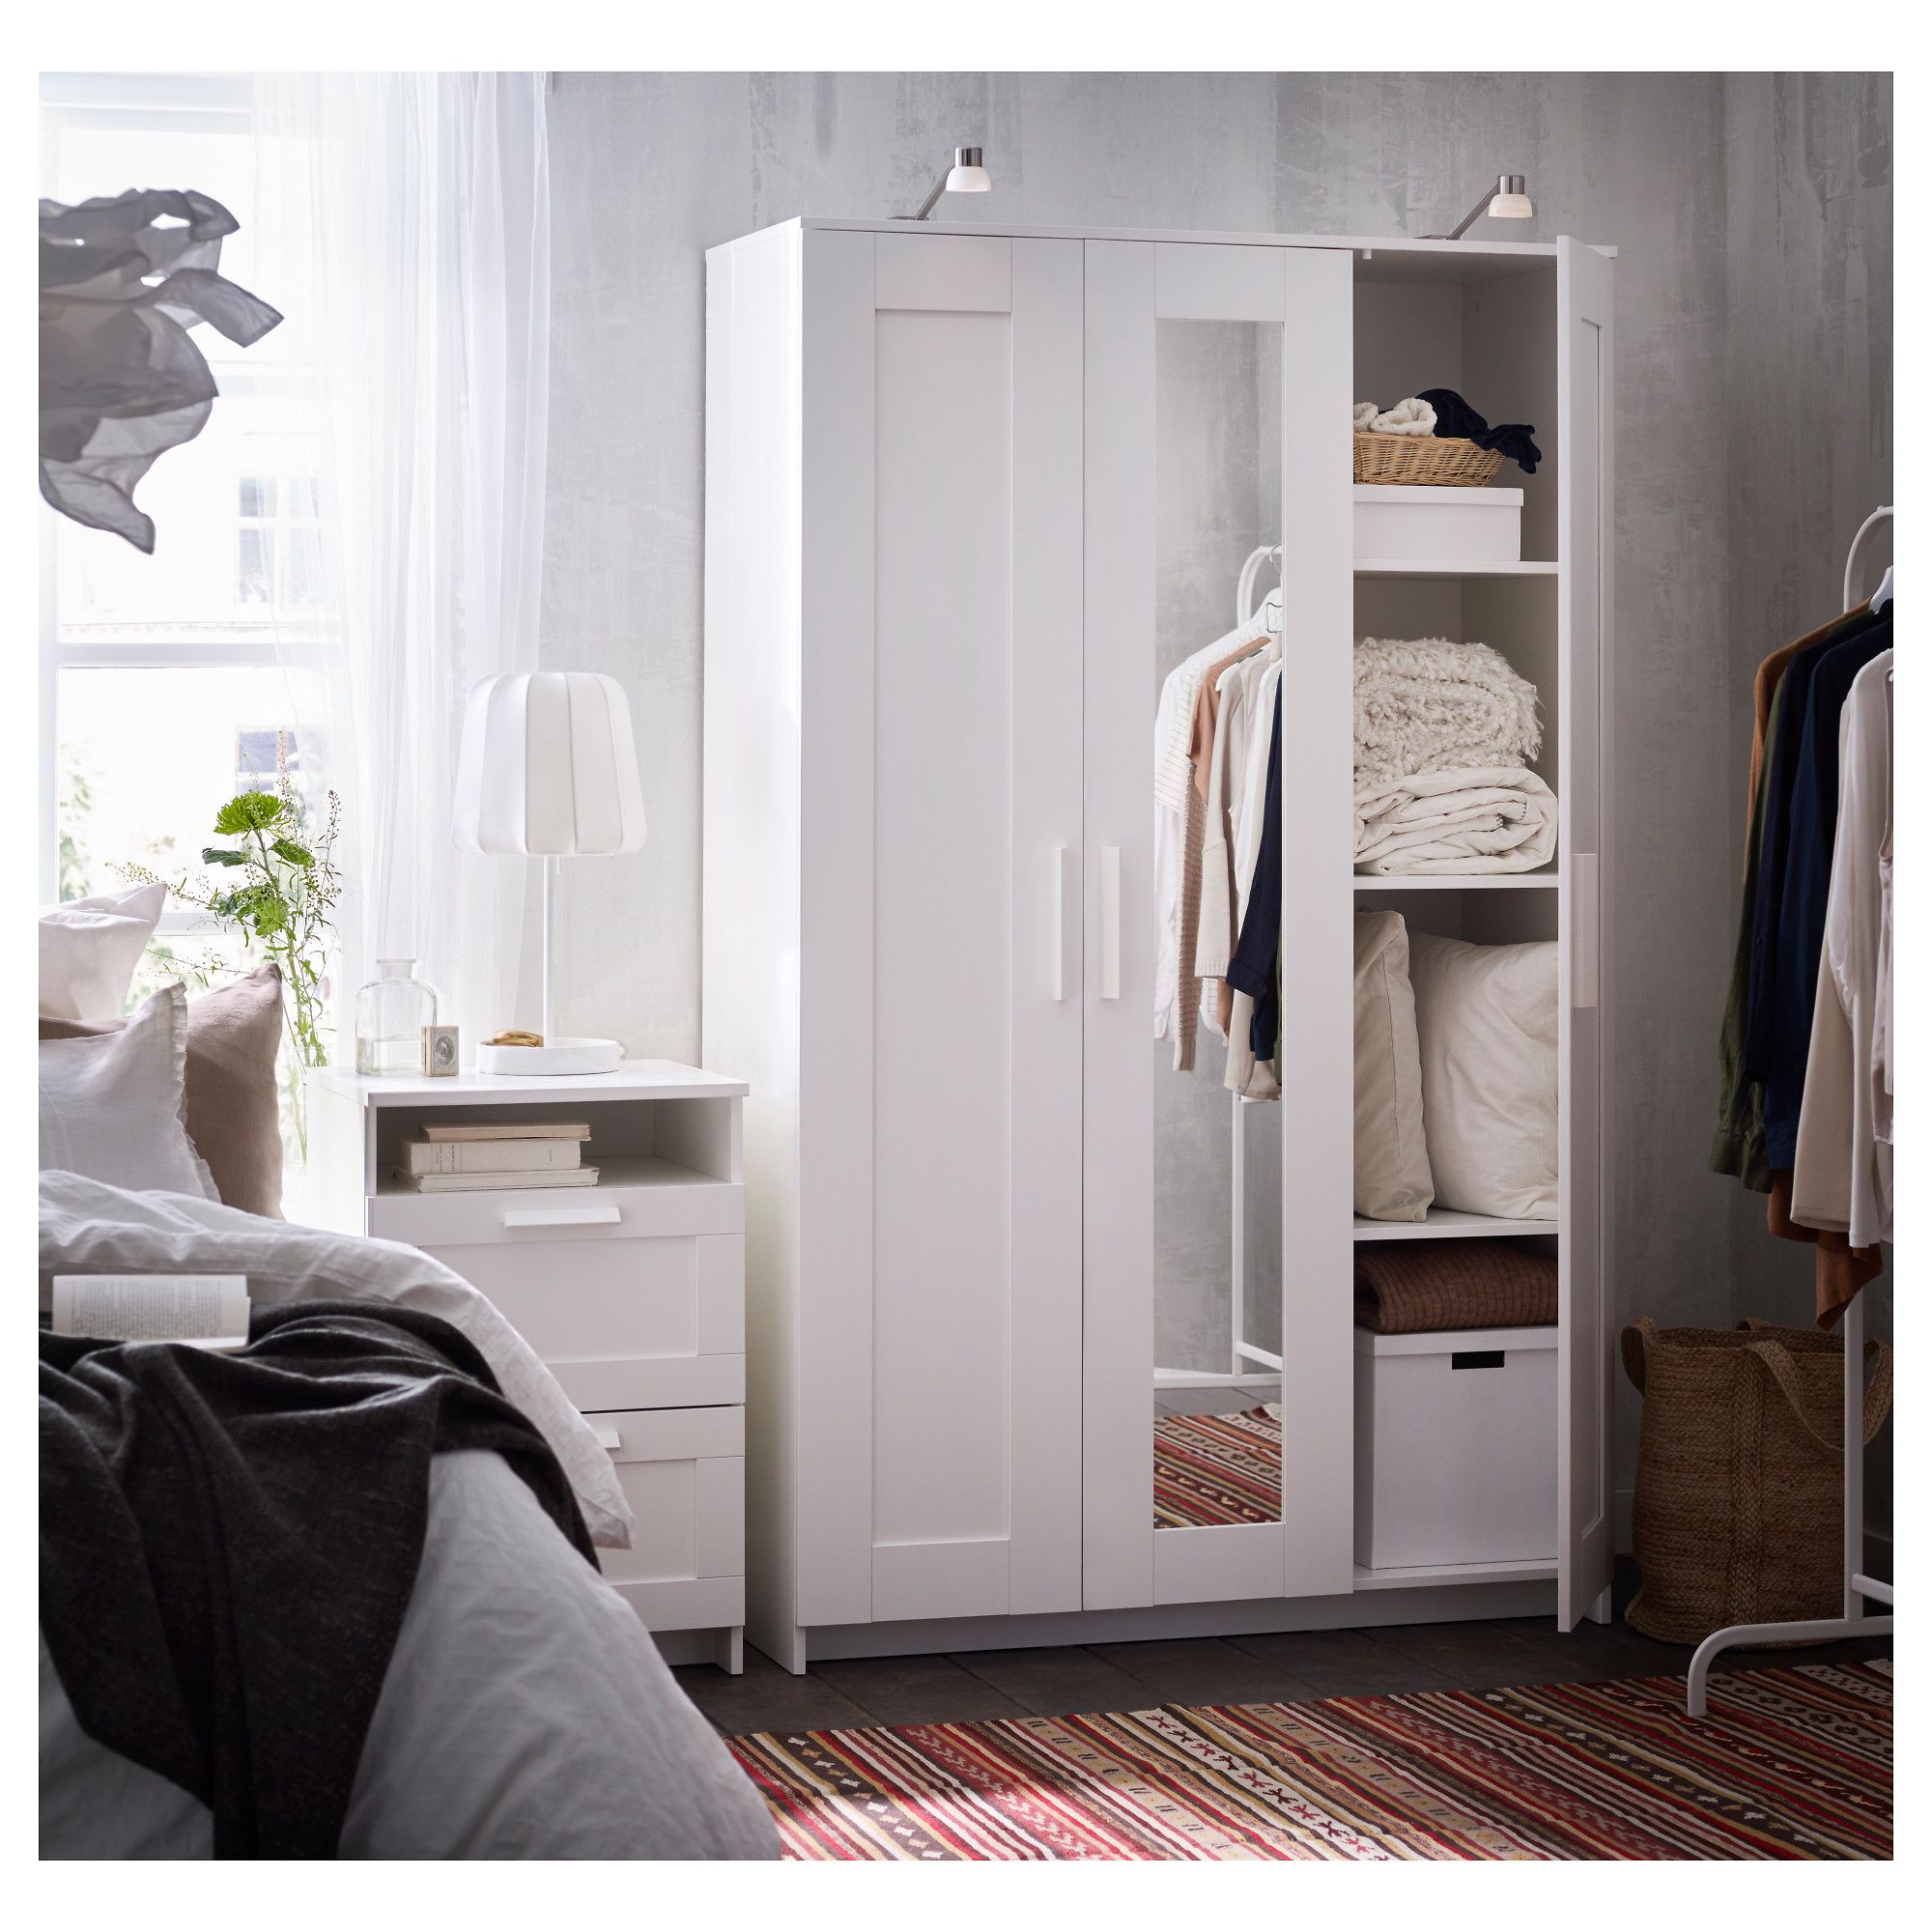 Le Meilleur Ikea Brimnes Wardrobe With 3 Doors White Products Ce Mois Ci